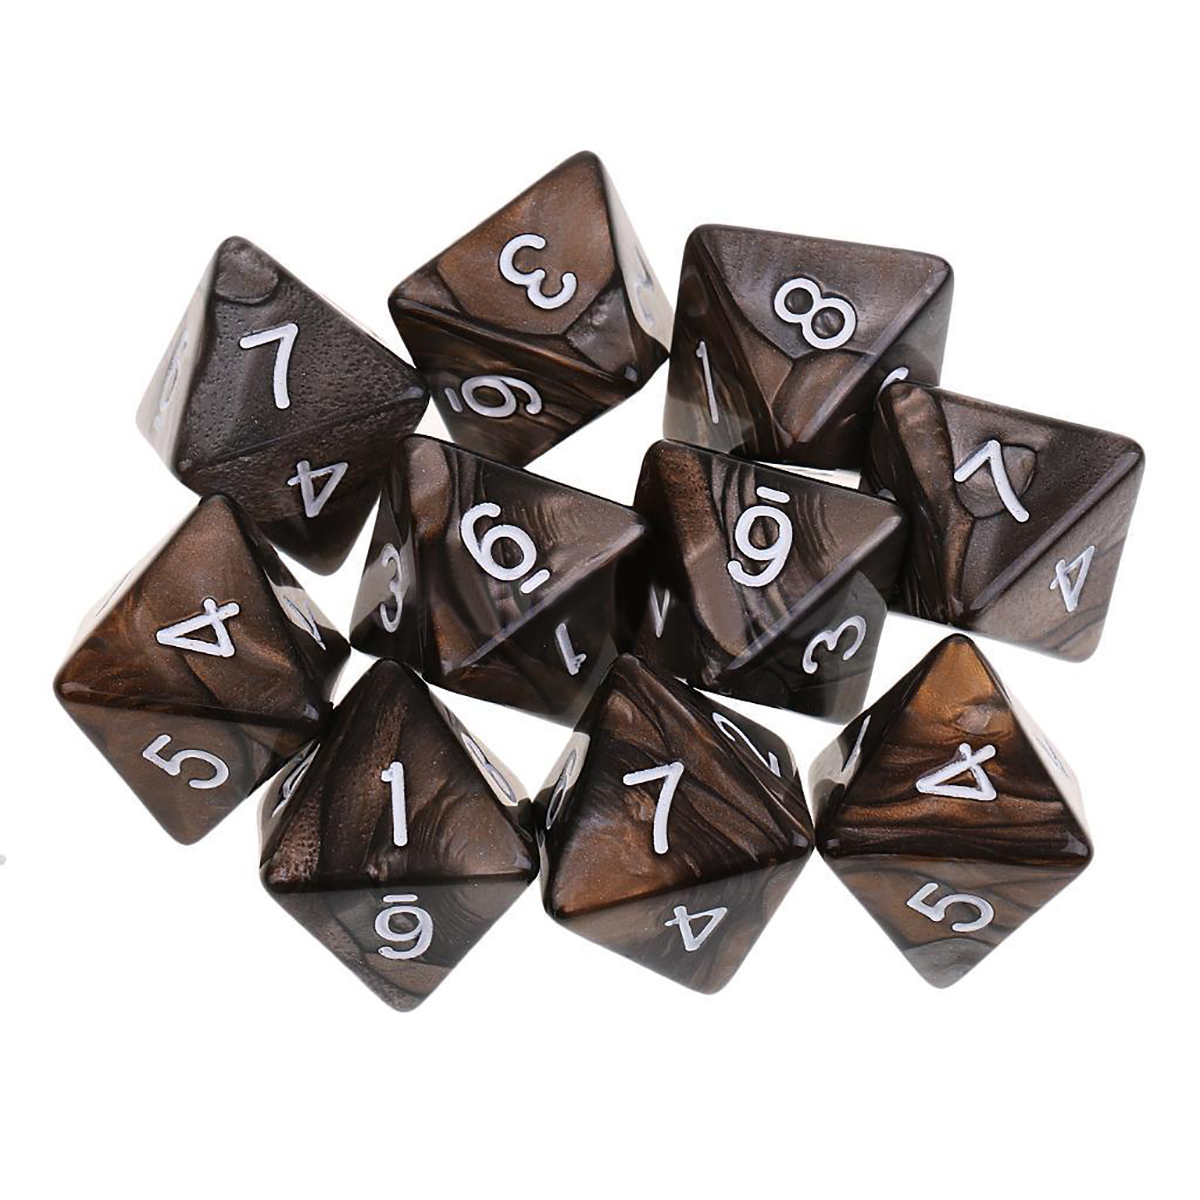 Mayitr 2019 New 10PCS/Set Colorful D8 For Dungeons Dragons Dice Set Acrylic Polyhedral Play Games 8 Sided Dice 7 Color Choose